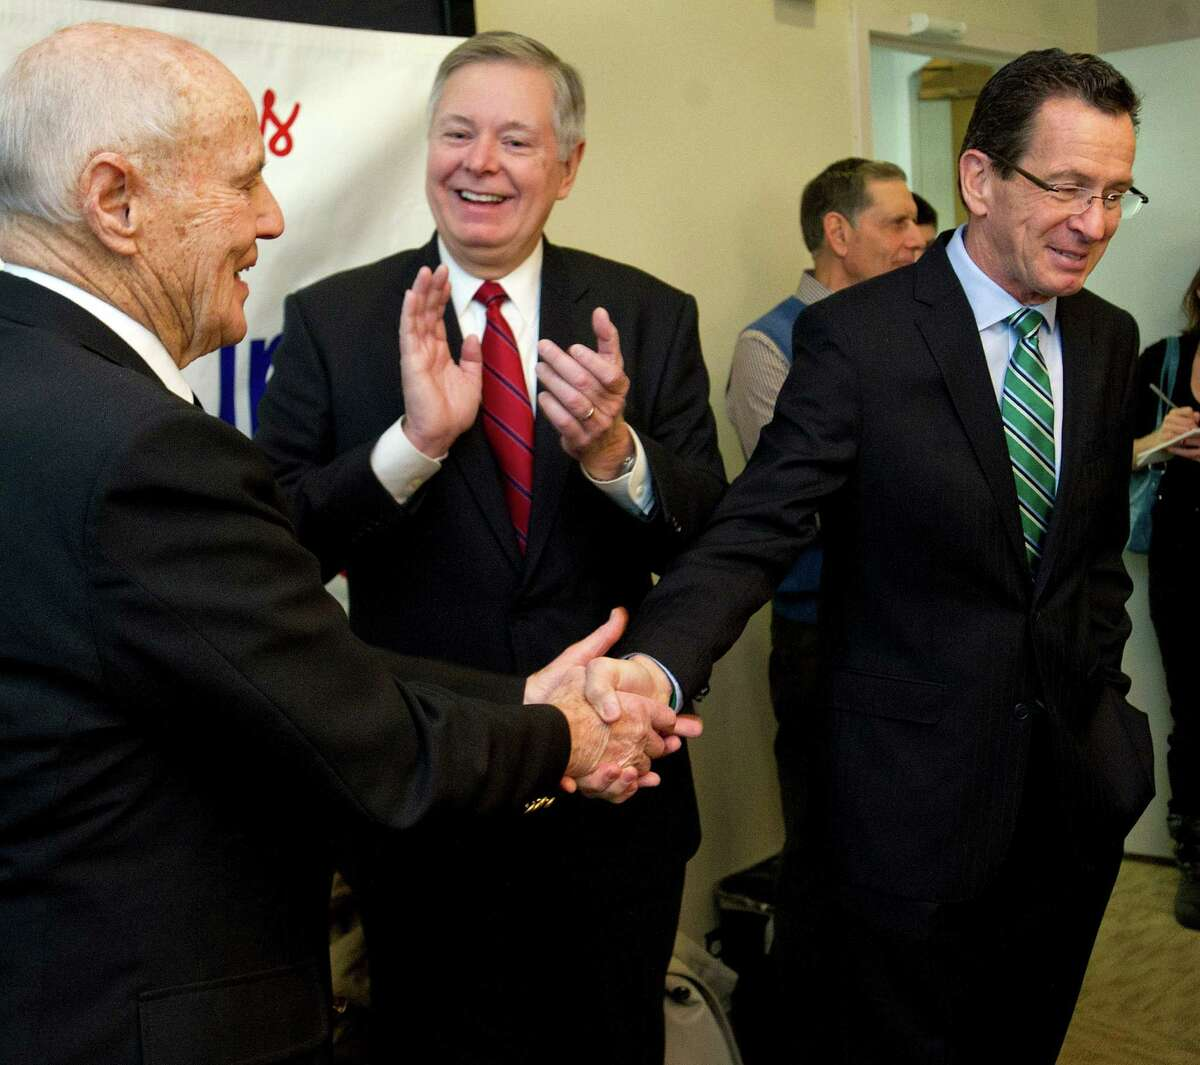 Tim Curtin, special assistant to the mayor, shakes hands with Governor Dannel Malloy as Mayor David Martin looks on. Curtin was surprised with a ceremony to name him the Citizen of the Year at Government Center in Stamford, Conn., on Thursday, January 9, 2014.